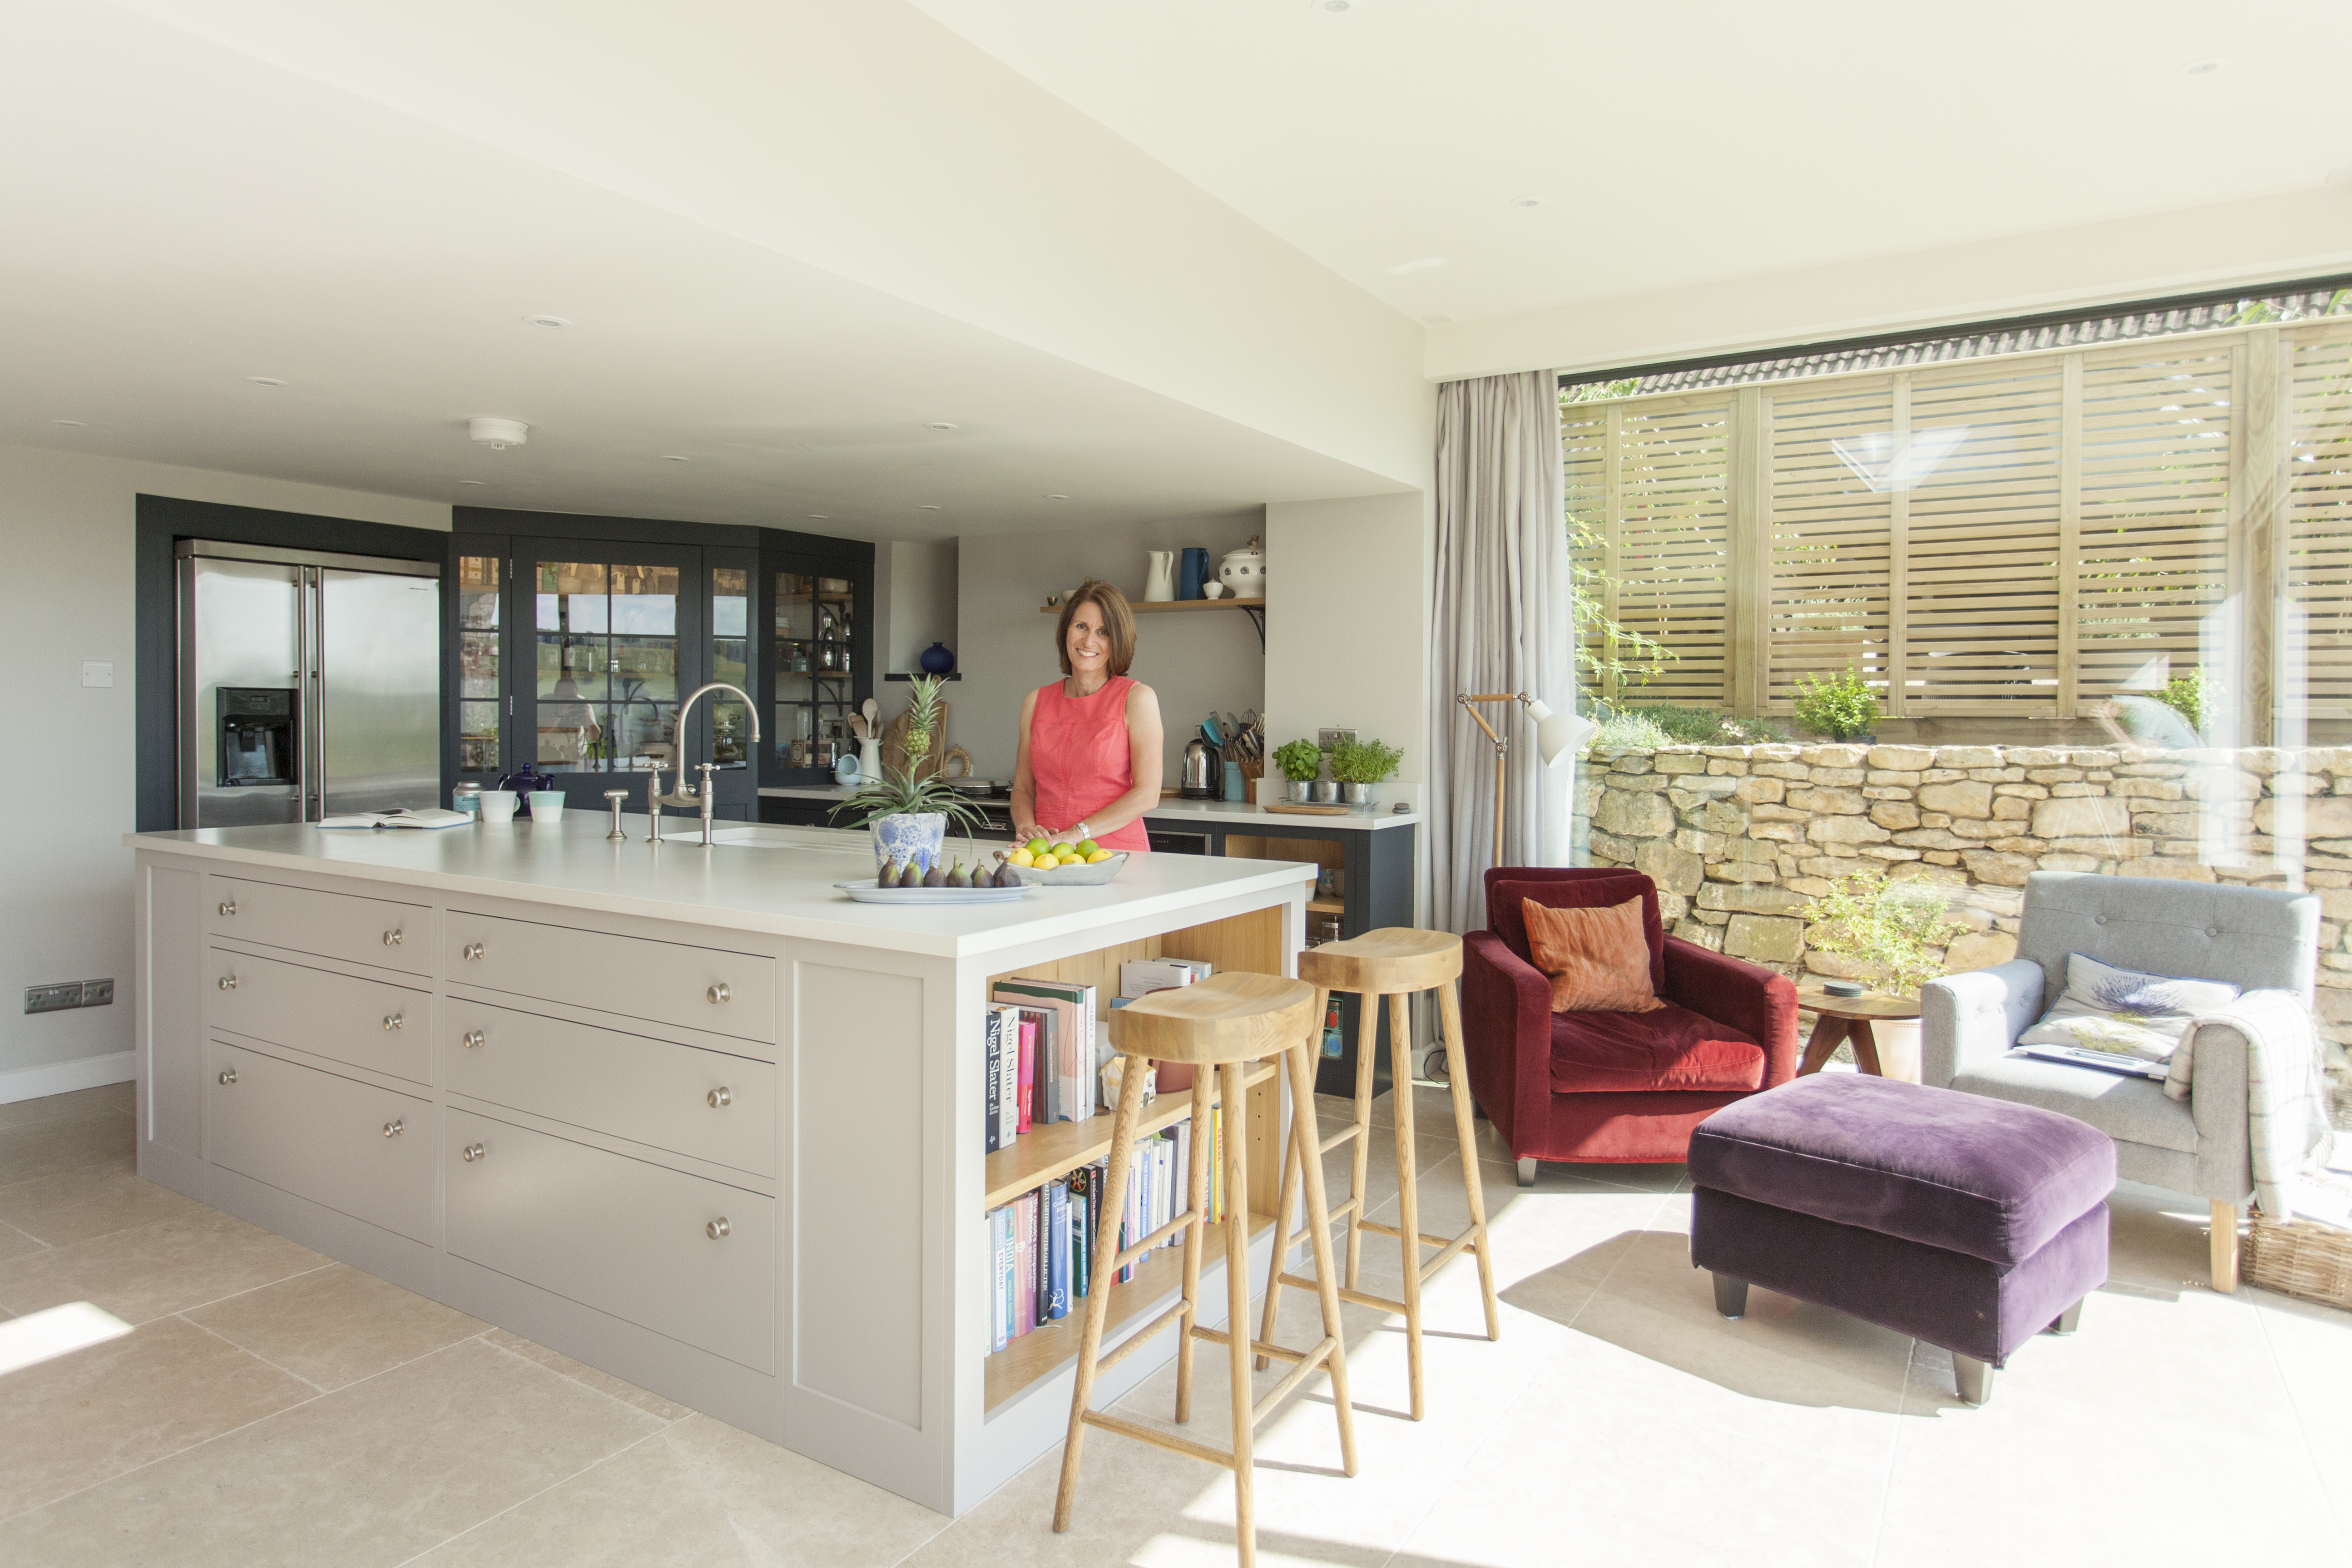 DHVA Barn extension in Cotwolds Kitchen